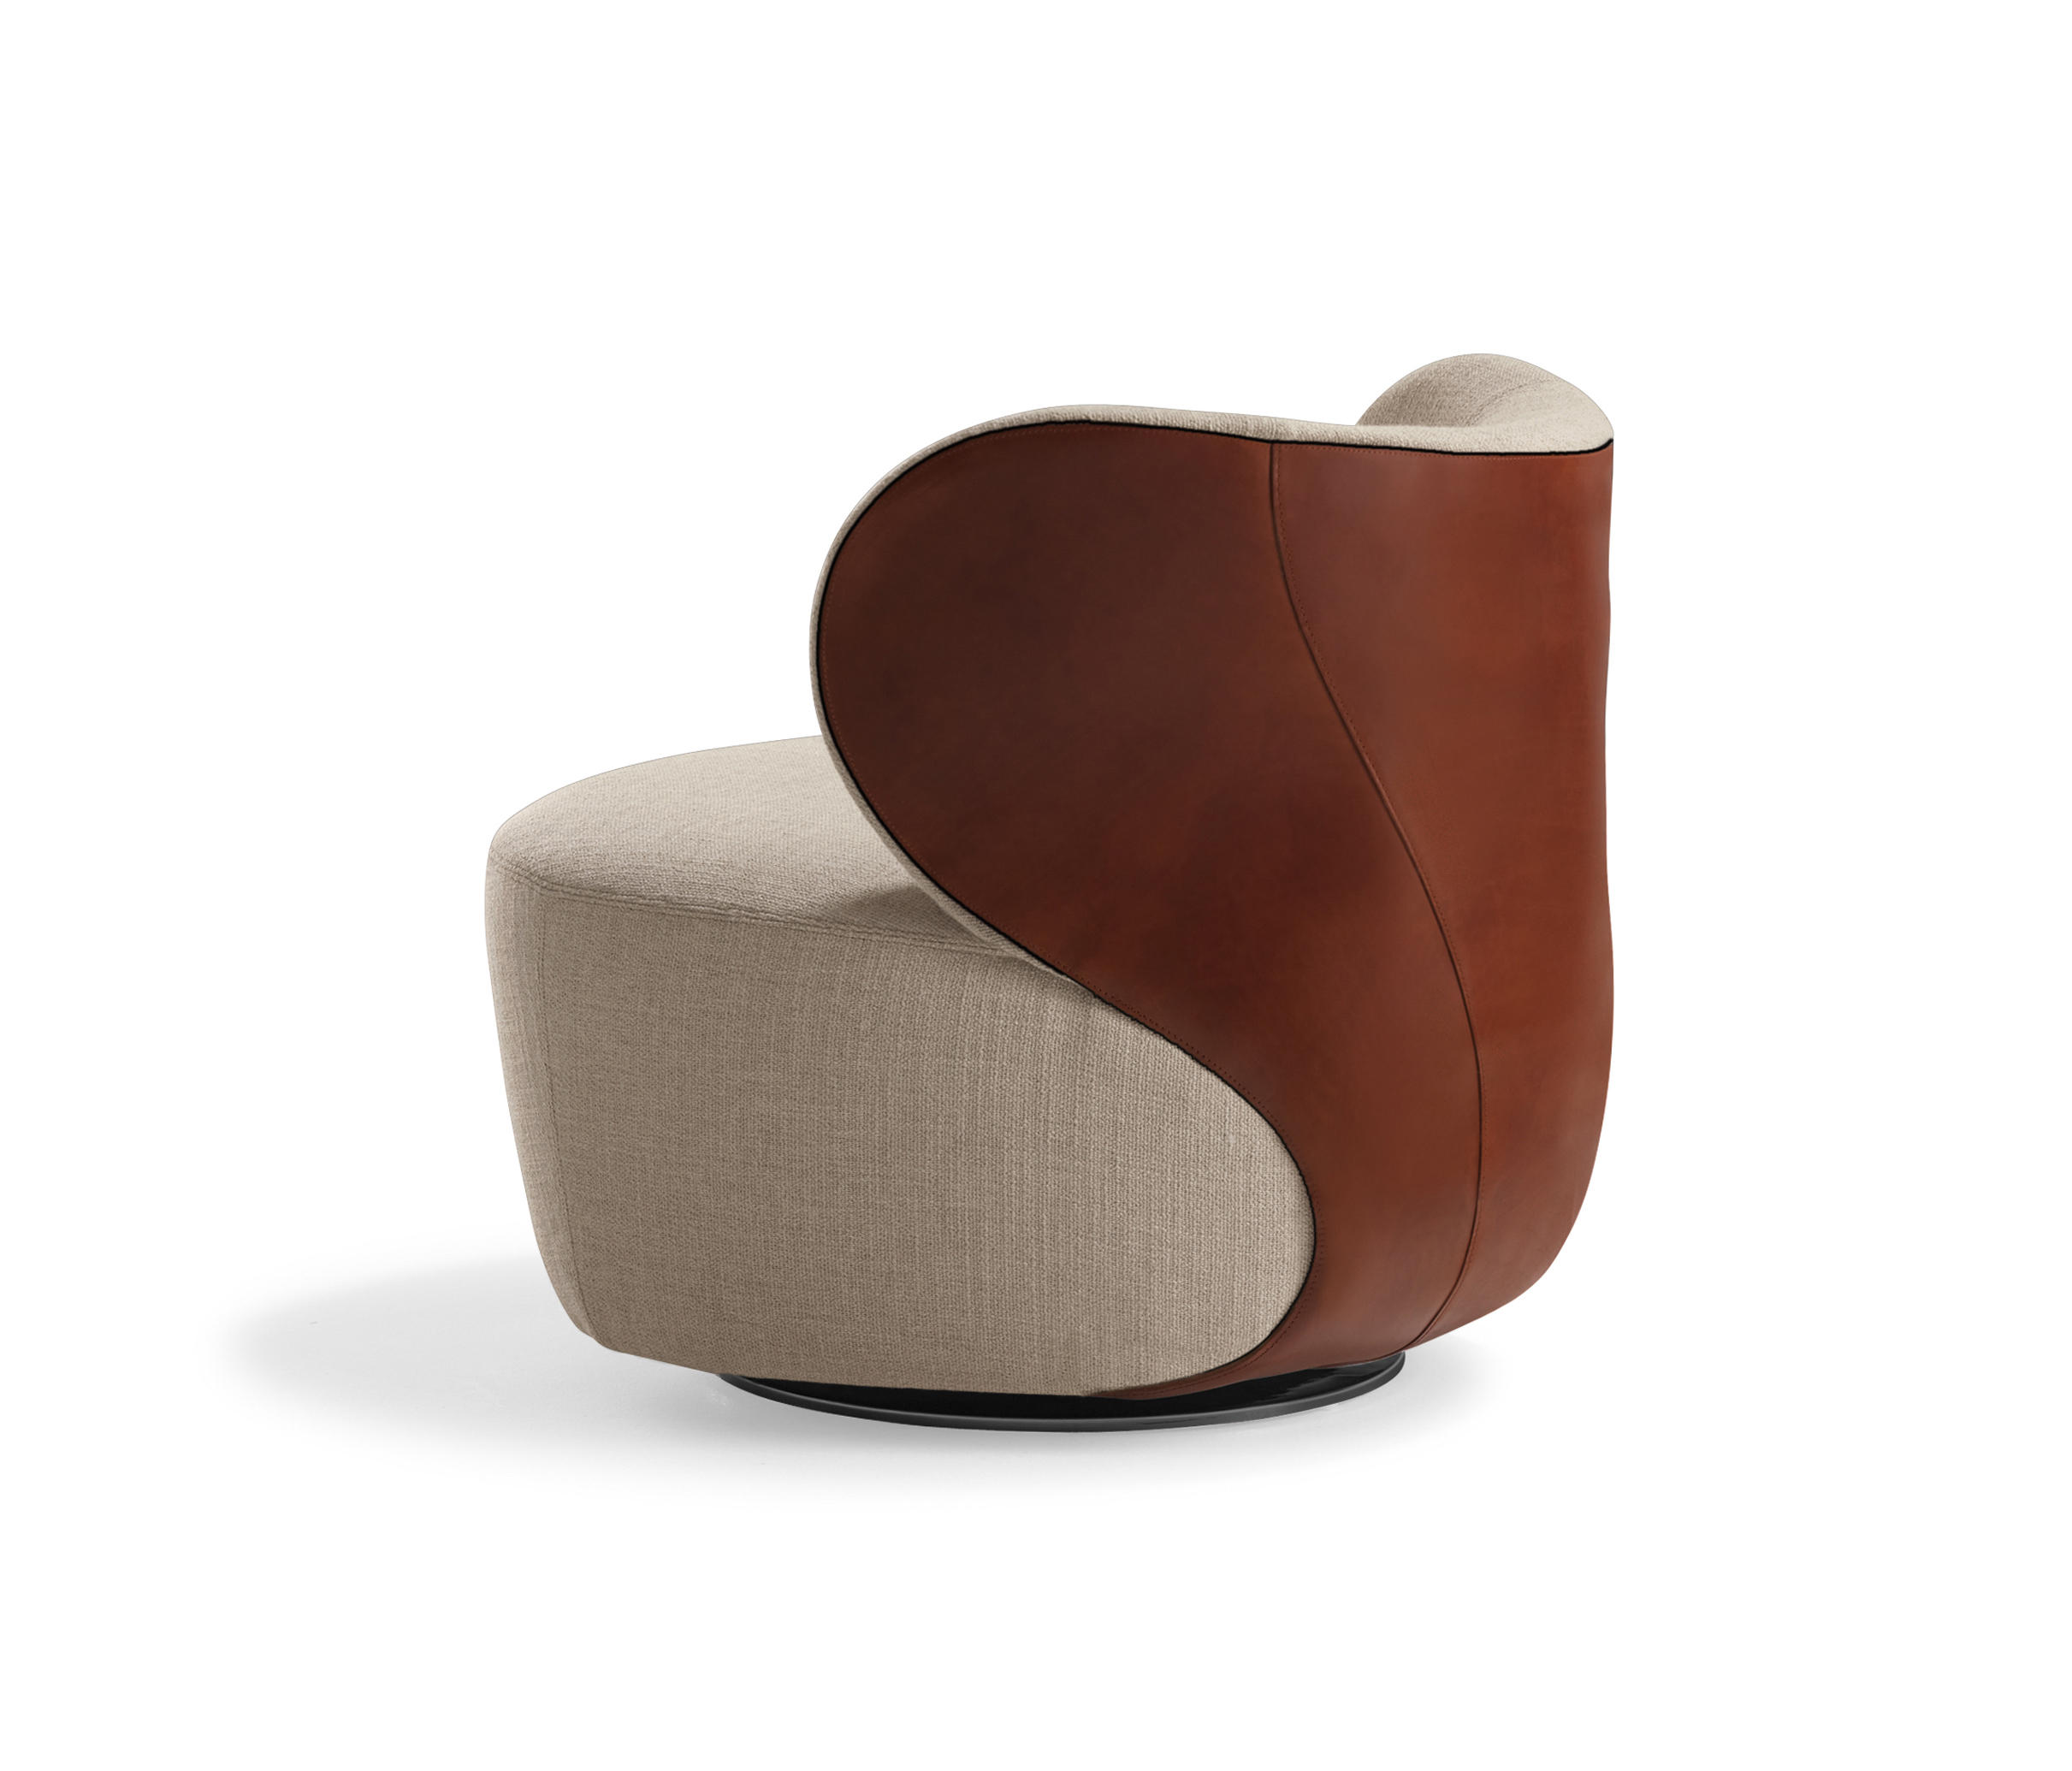 Delicieux Bao Armchair By Walter Knoll | Armchairs ...